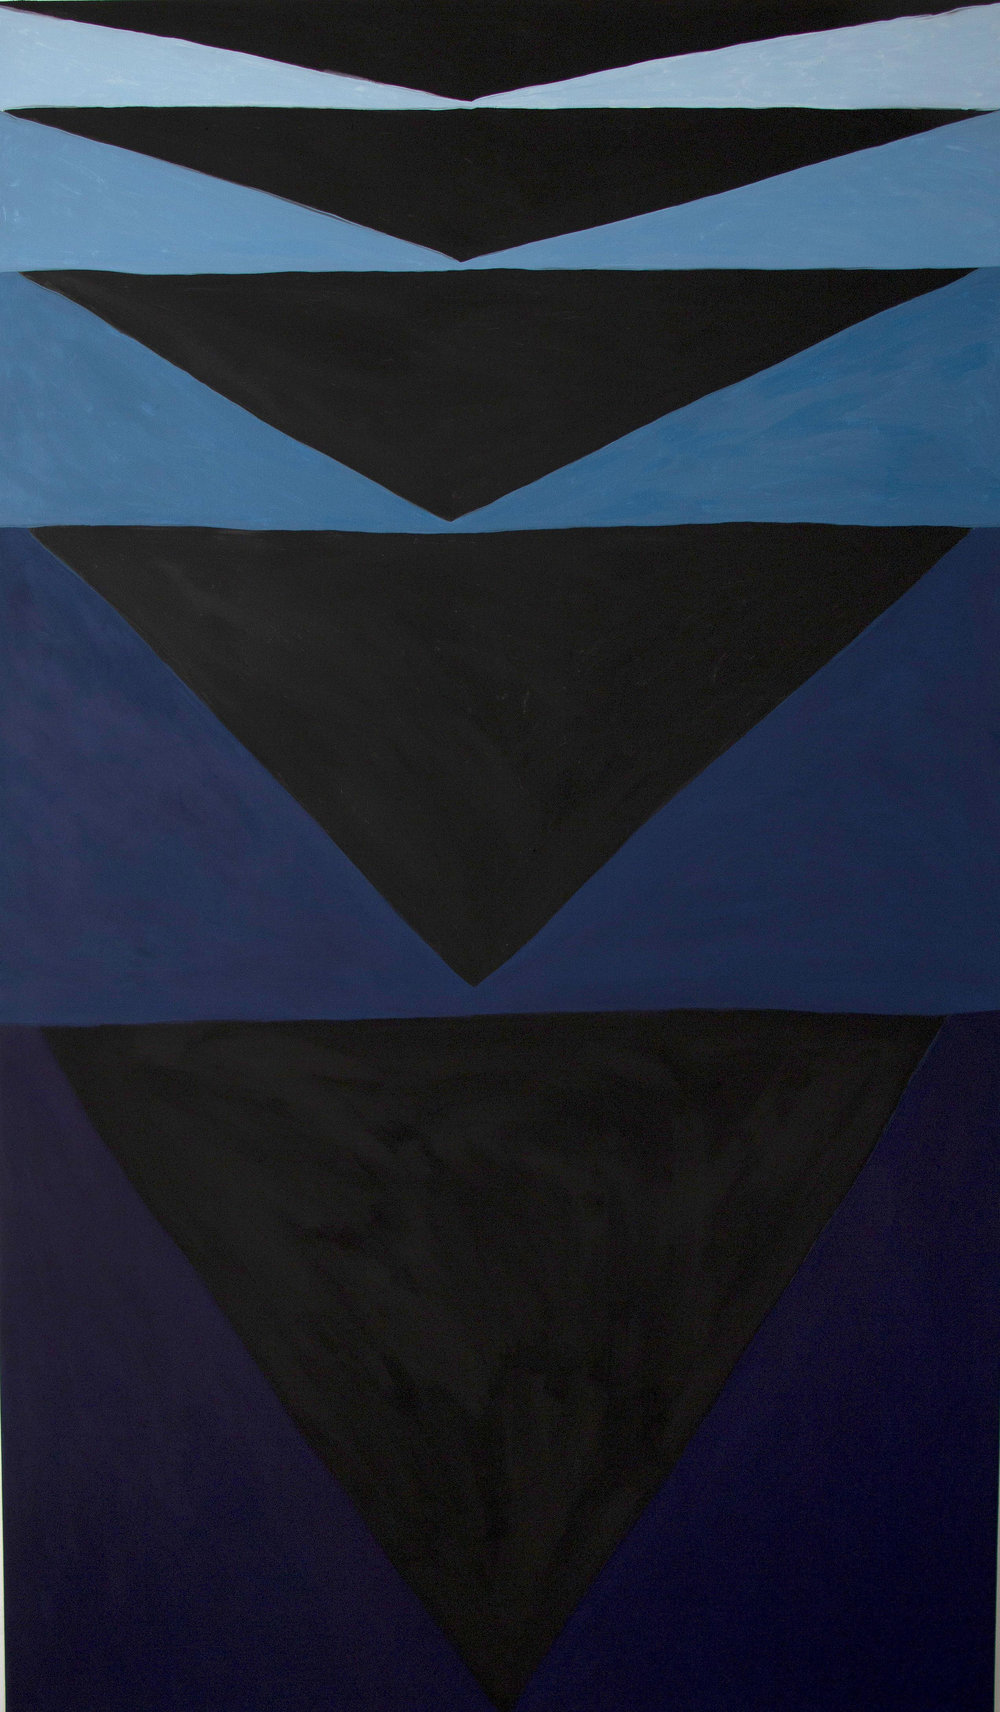 Going deep, 2018. Oil and tempera on linen, 190 x 110 cm. $8,900 SOLD